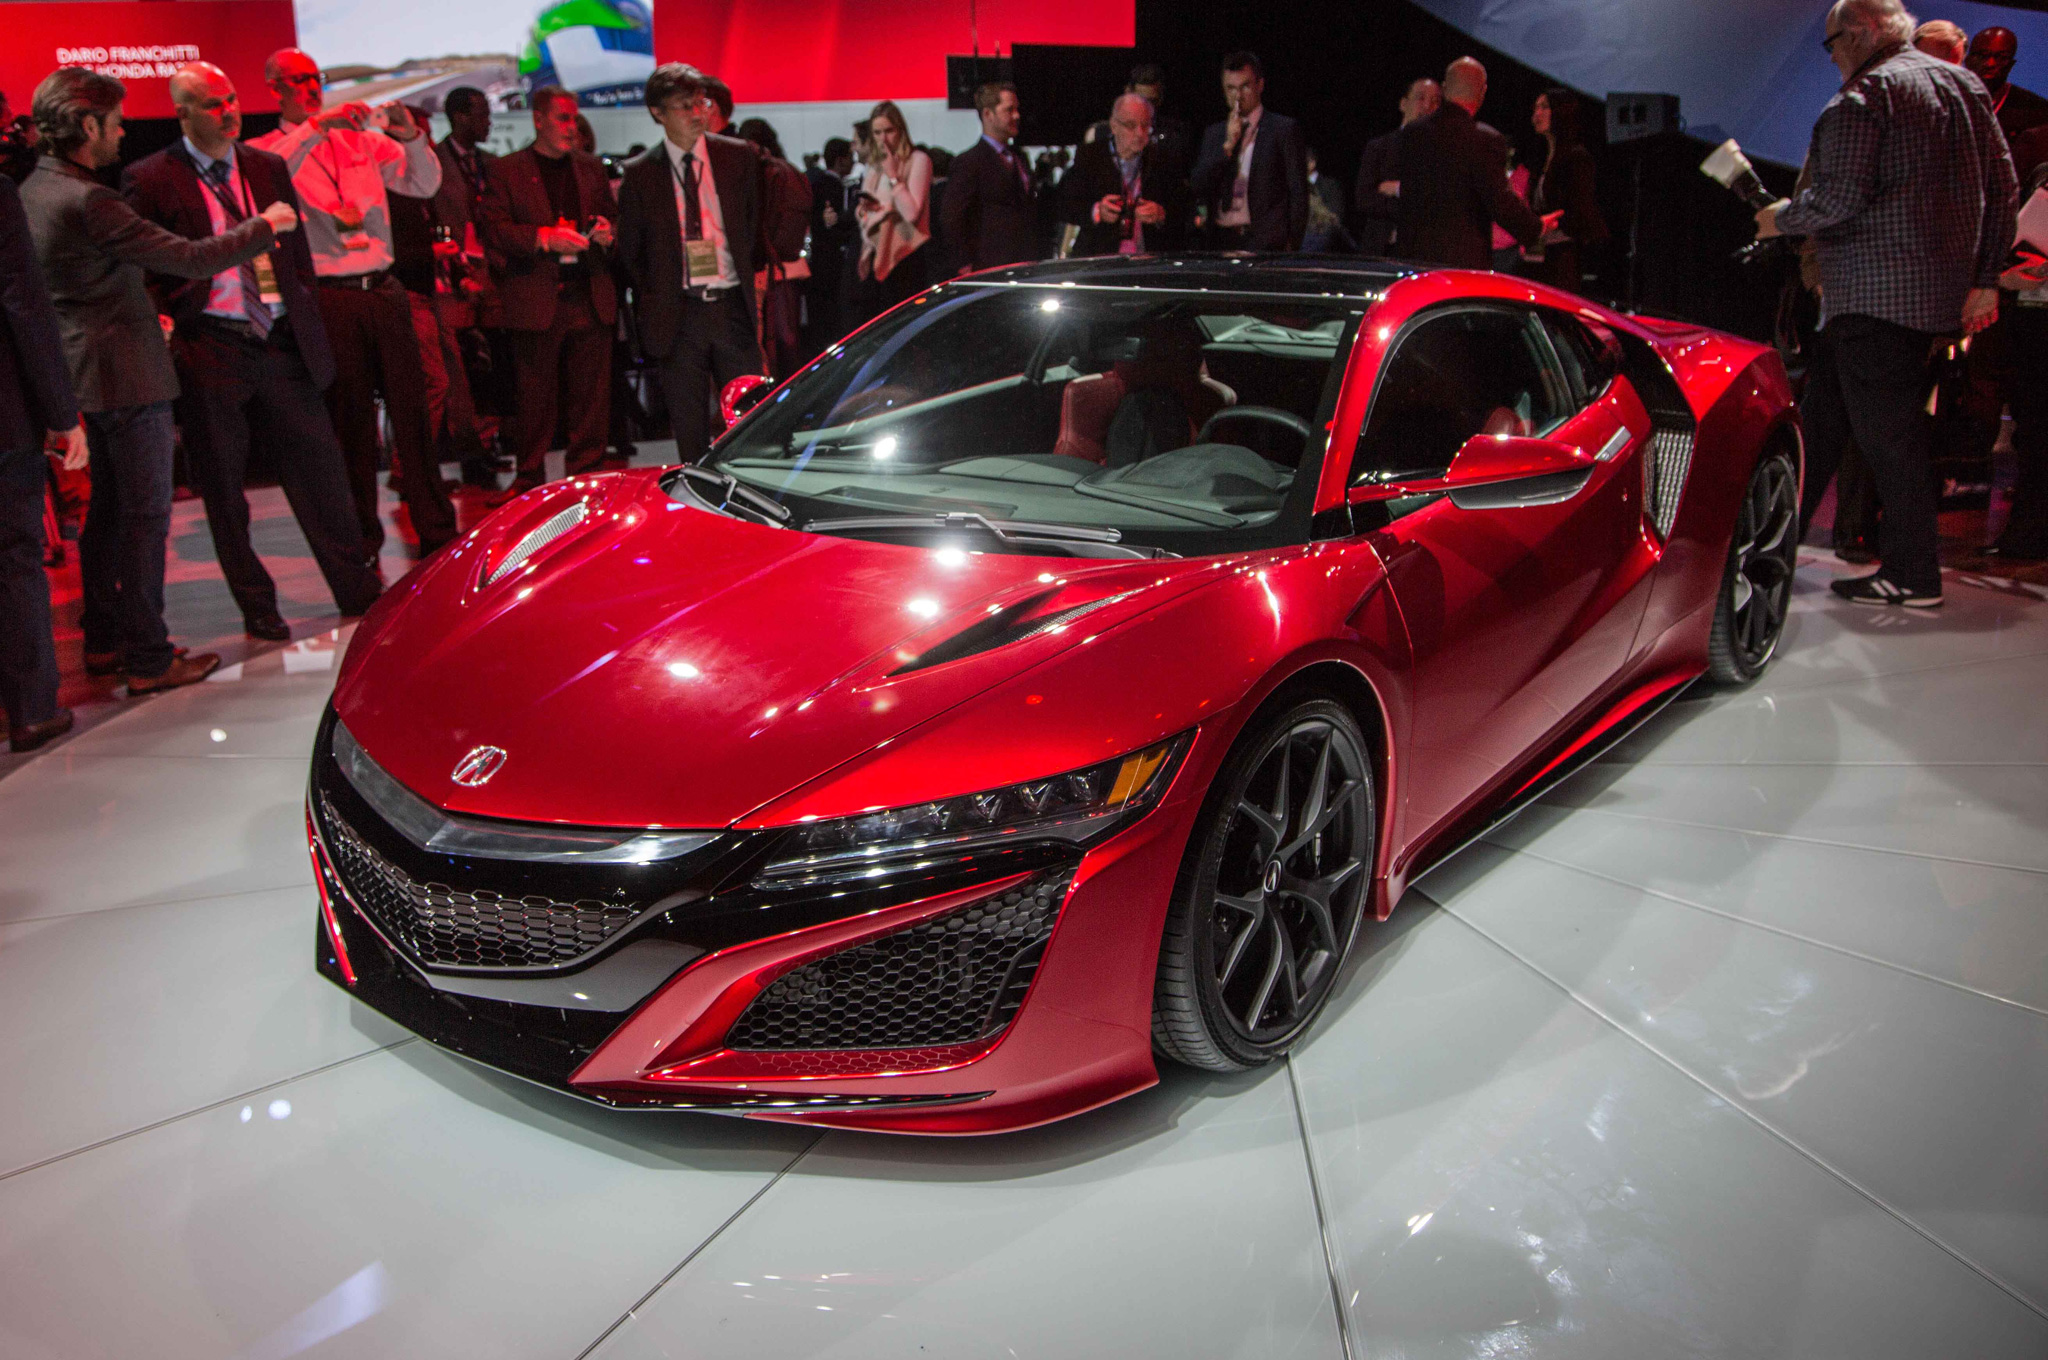 2016 Acura NSX Rolls Into Detroit With 'Badass' 550-Plus HP - Motor ...